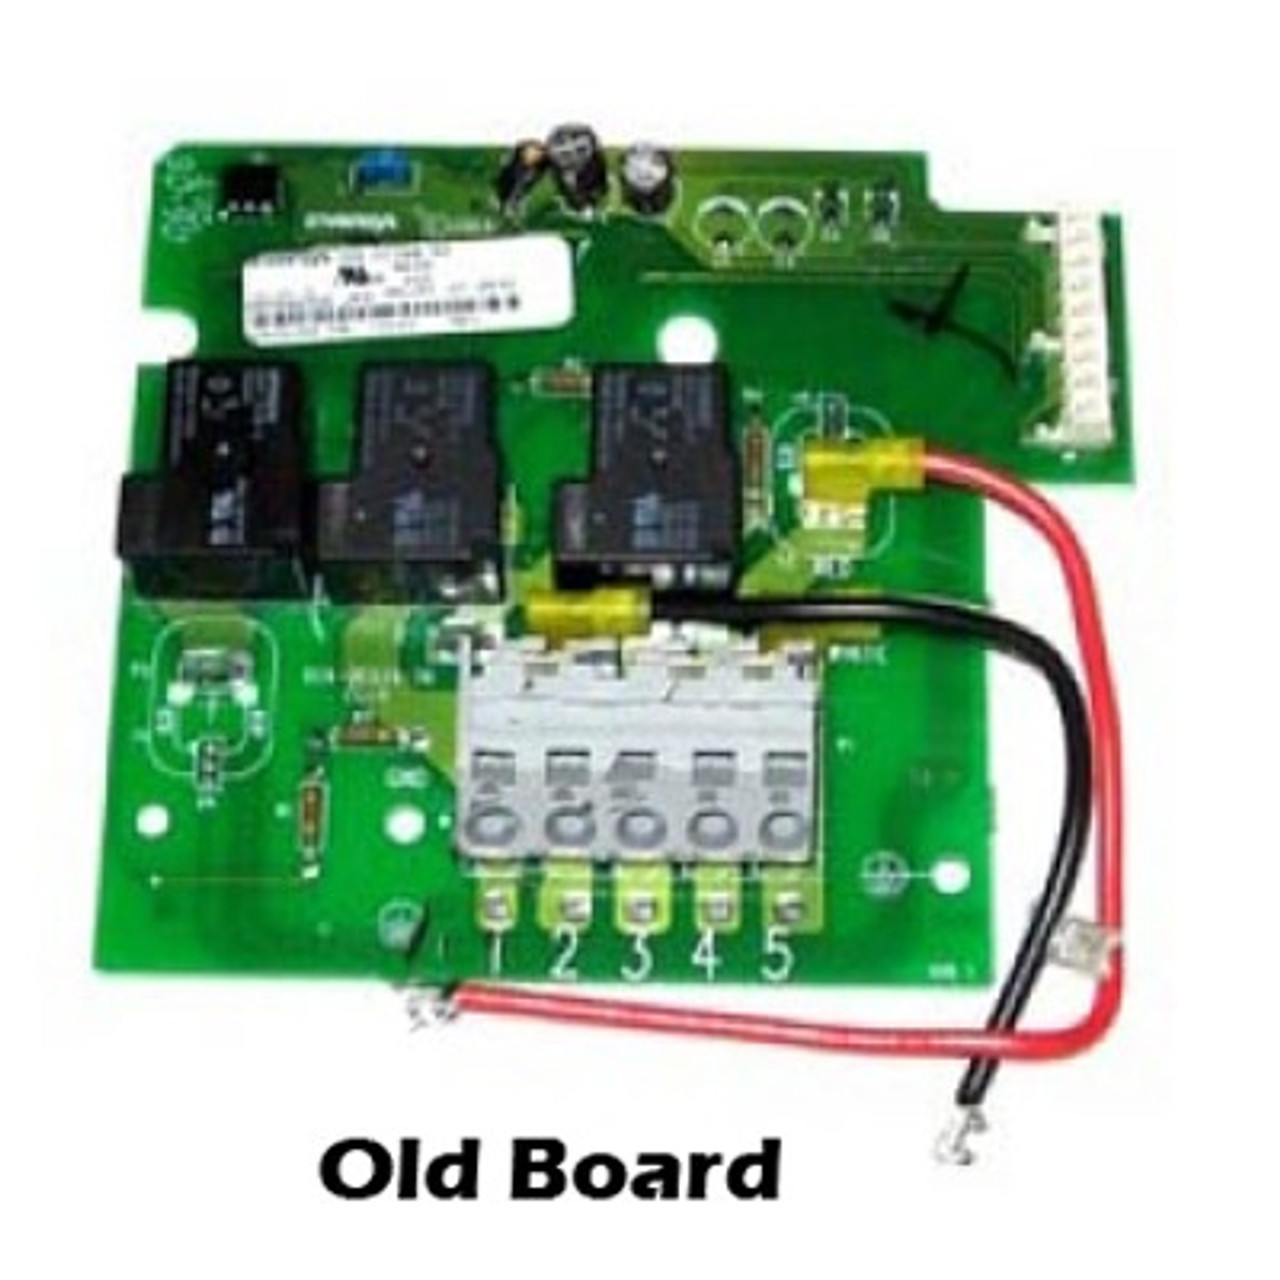 small resolution of  wiring diagram on caldera spas hot spring tiger river watkins iq 2020 heater relay on